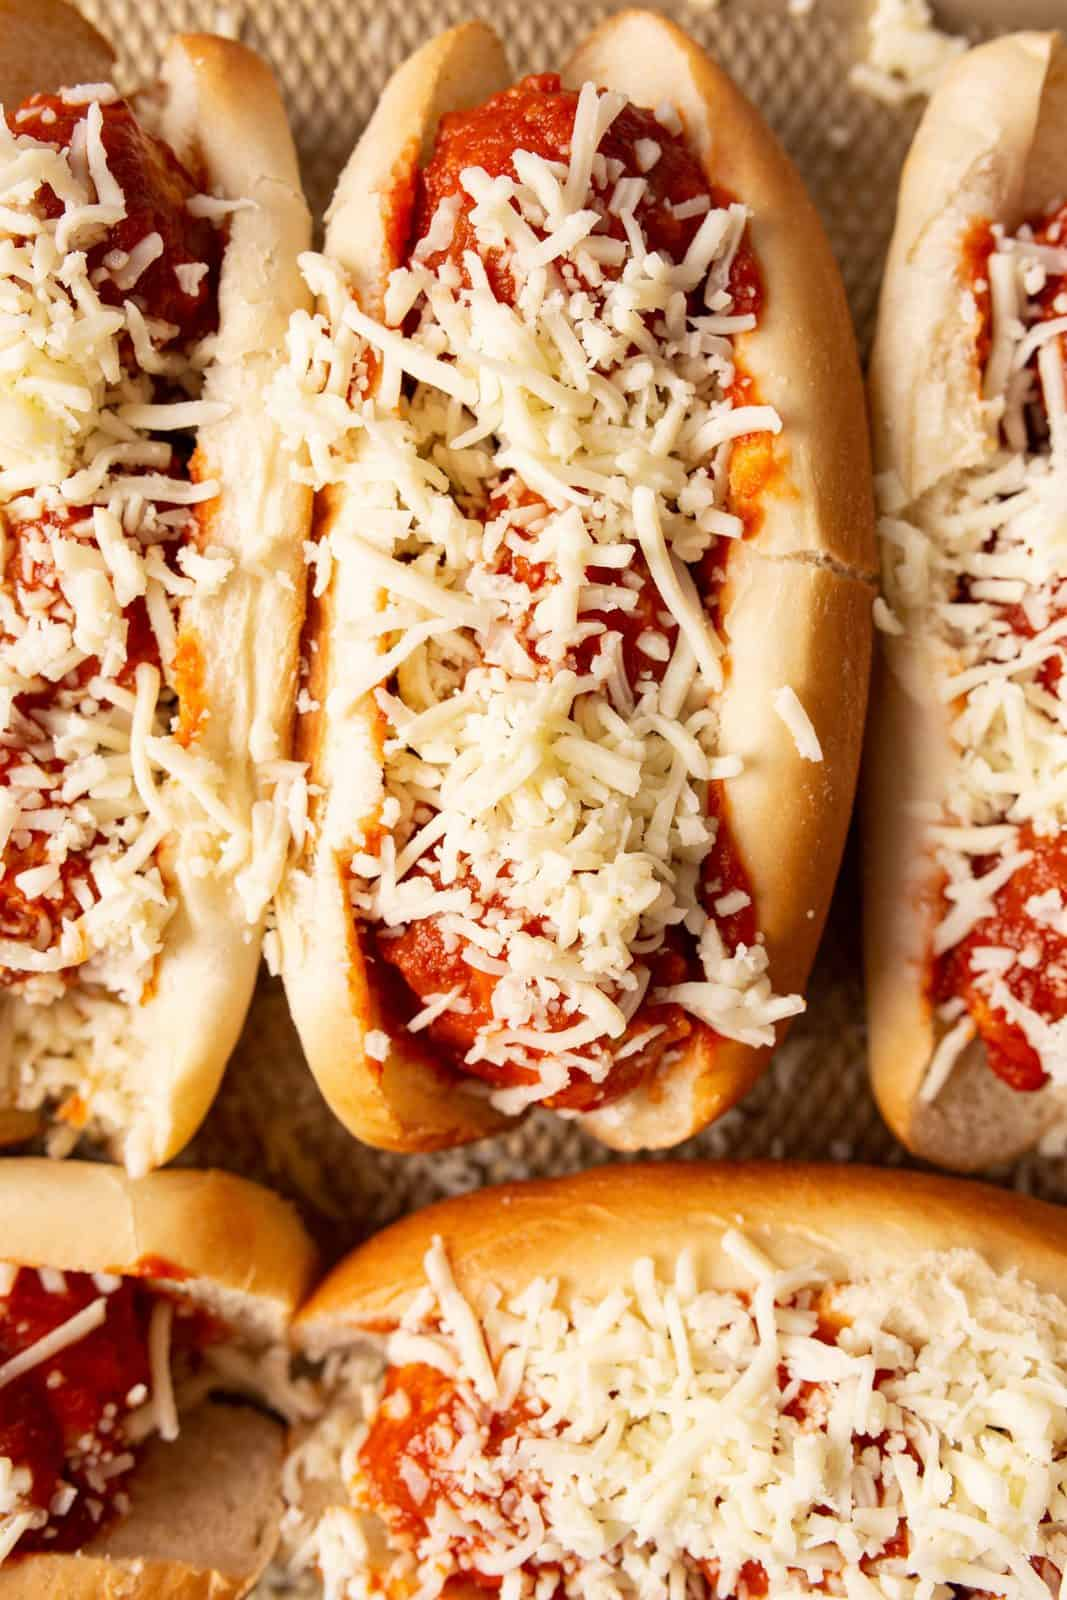 Cheese sprinkled on meatballs in buns.